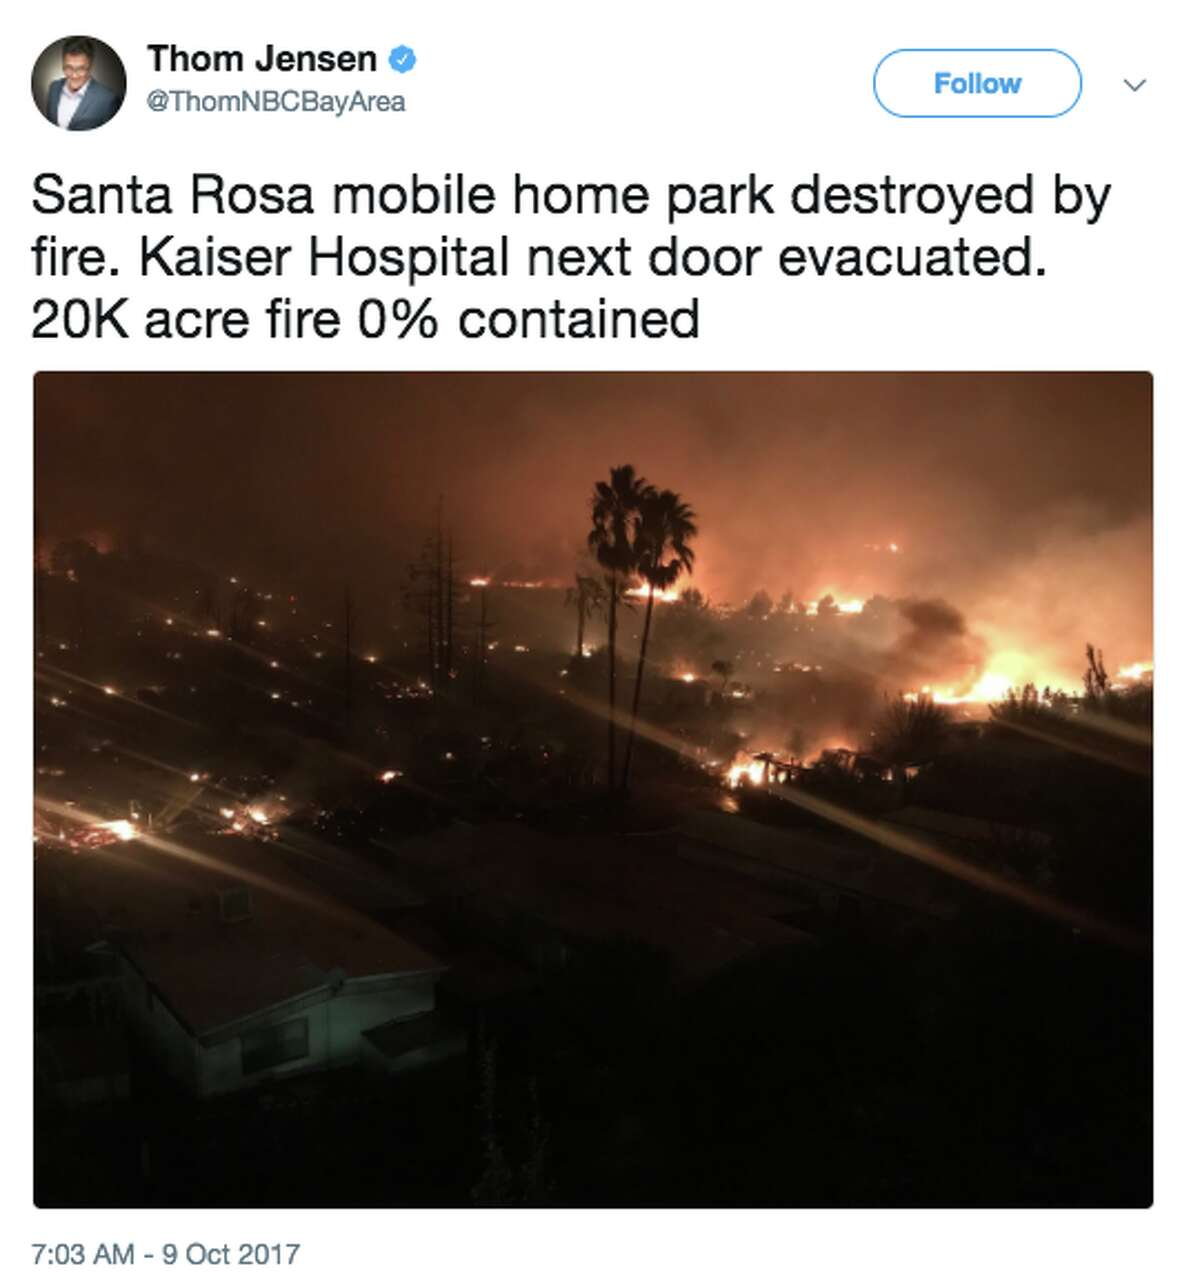 Kaiser Permanente Santa Rosa Medical Center was evacuated early Monday due to massive wildfires.